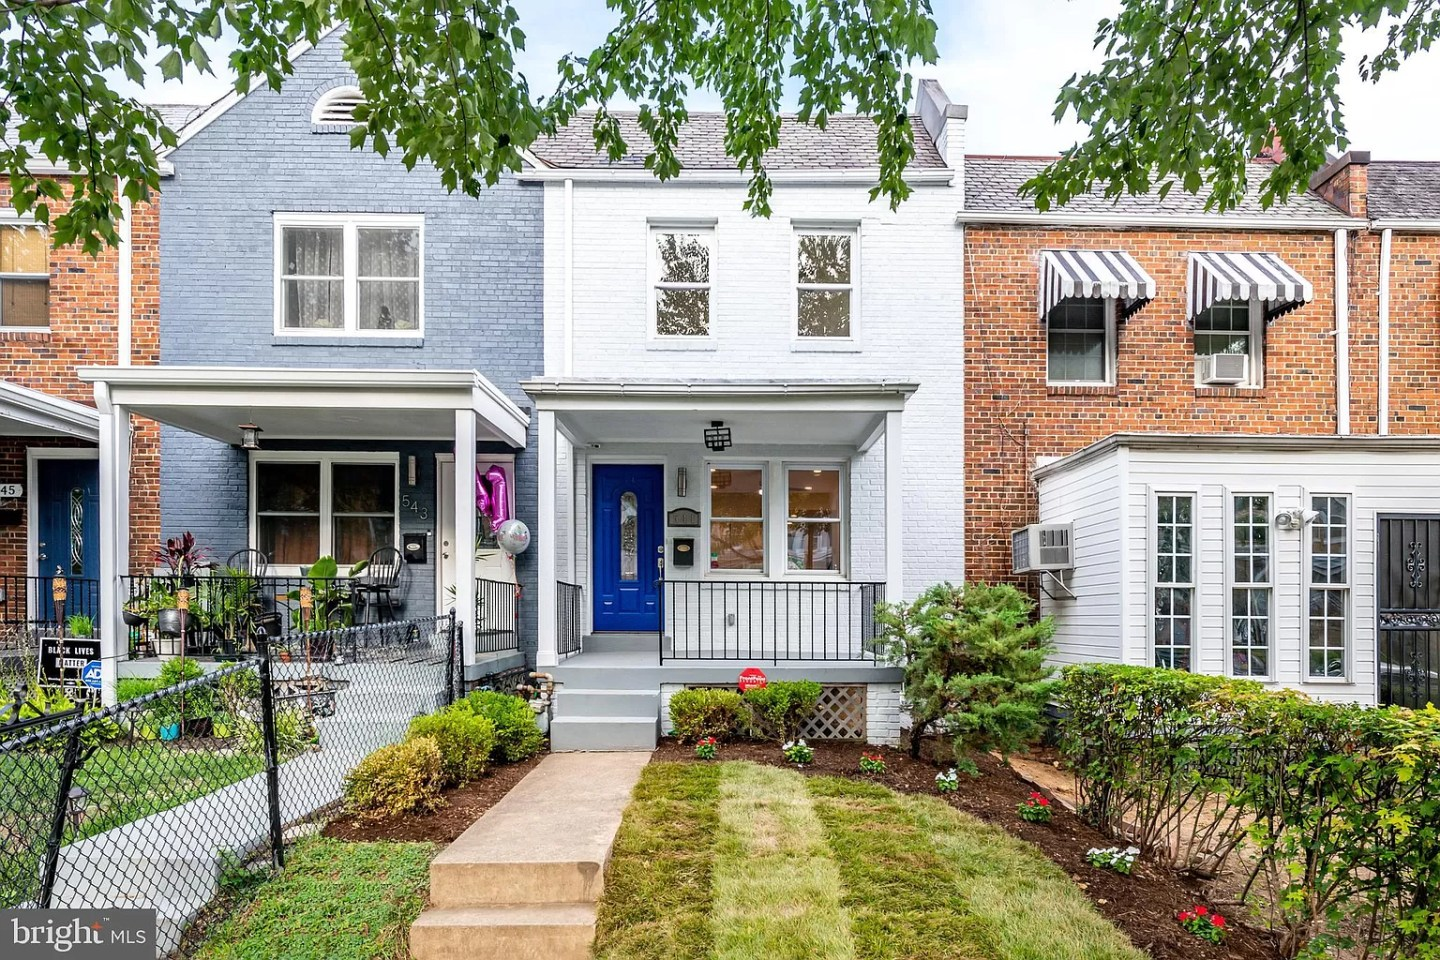 selling a house in dc - how to stage a house in dc - dc real estate - how to get ready to sell a house in washington dc - is it a good time to sell in dc